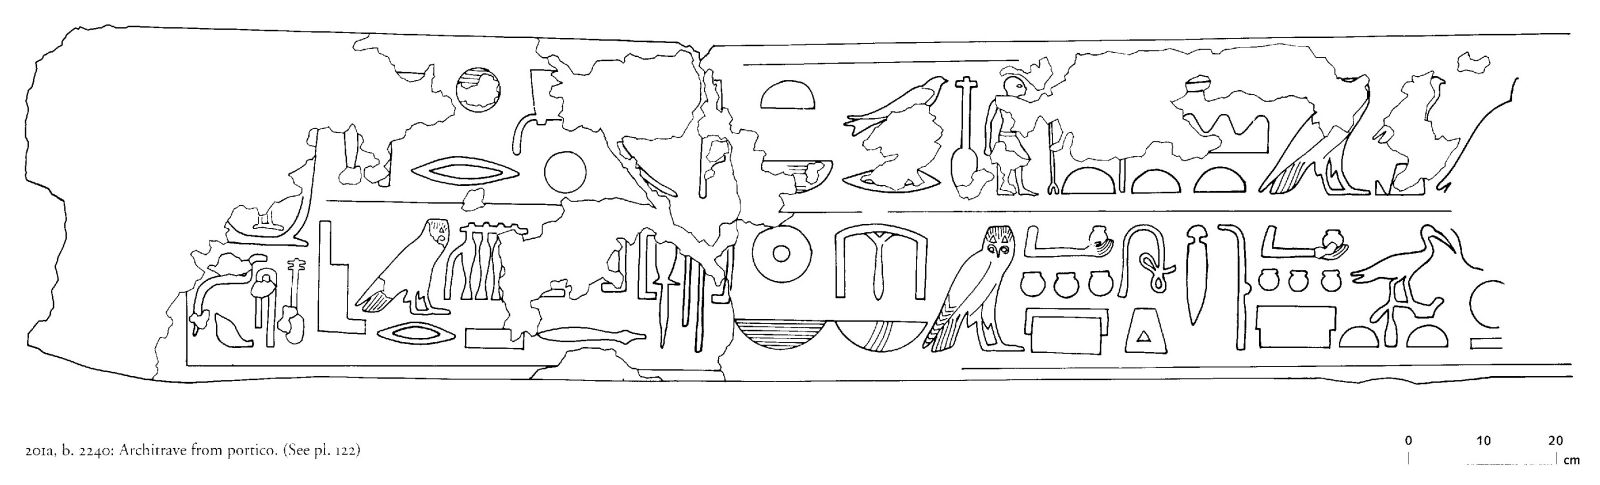 Drawings: G 2240: relief from portico, architrave